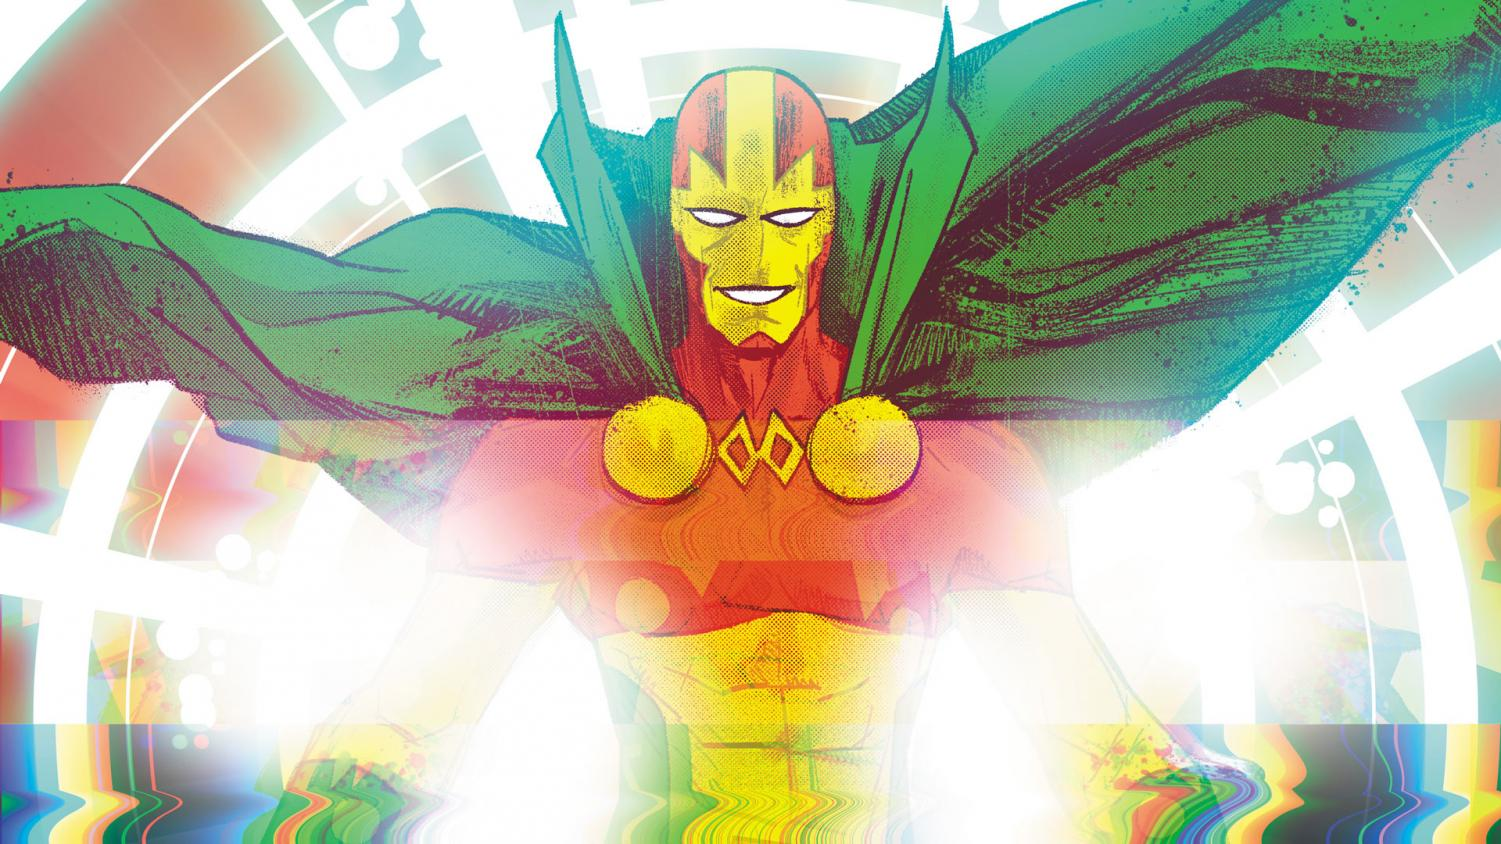 Mister Miracle gleefully appears before his audience.